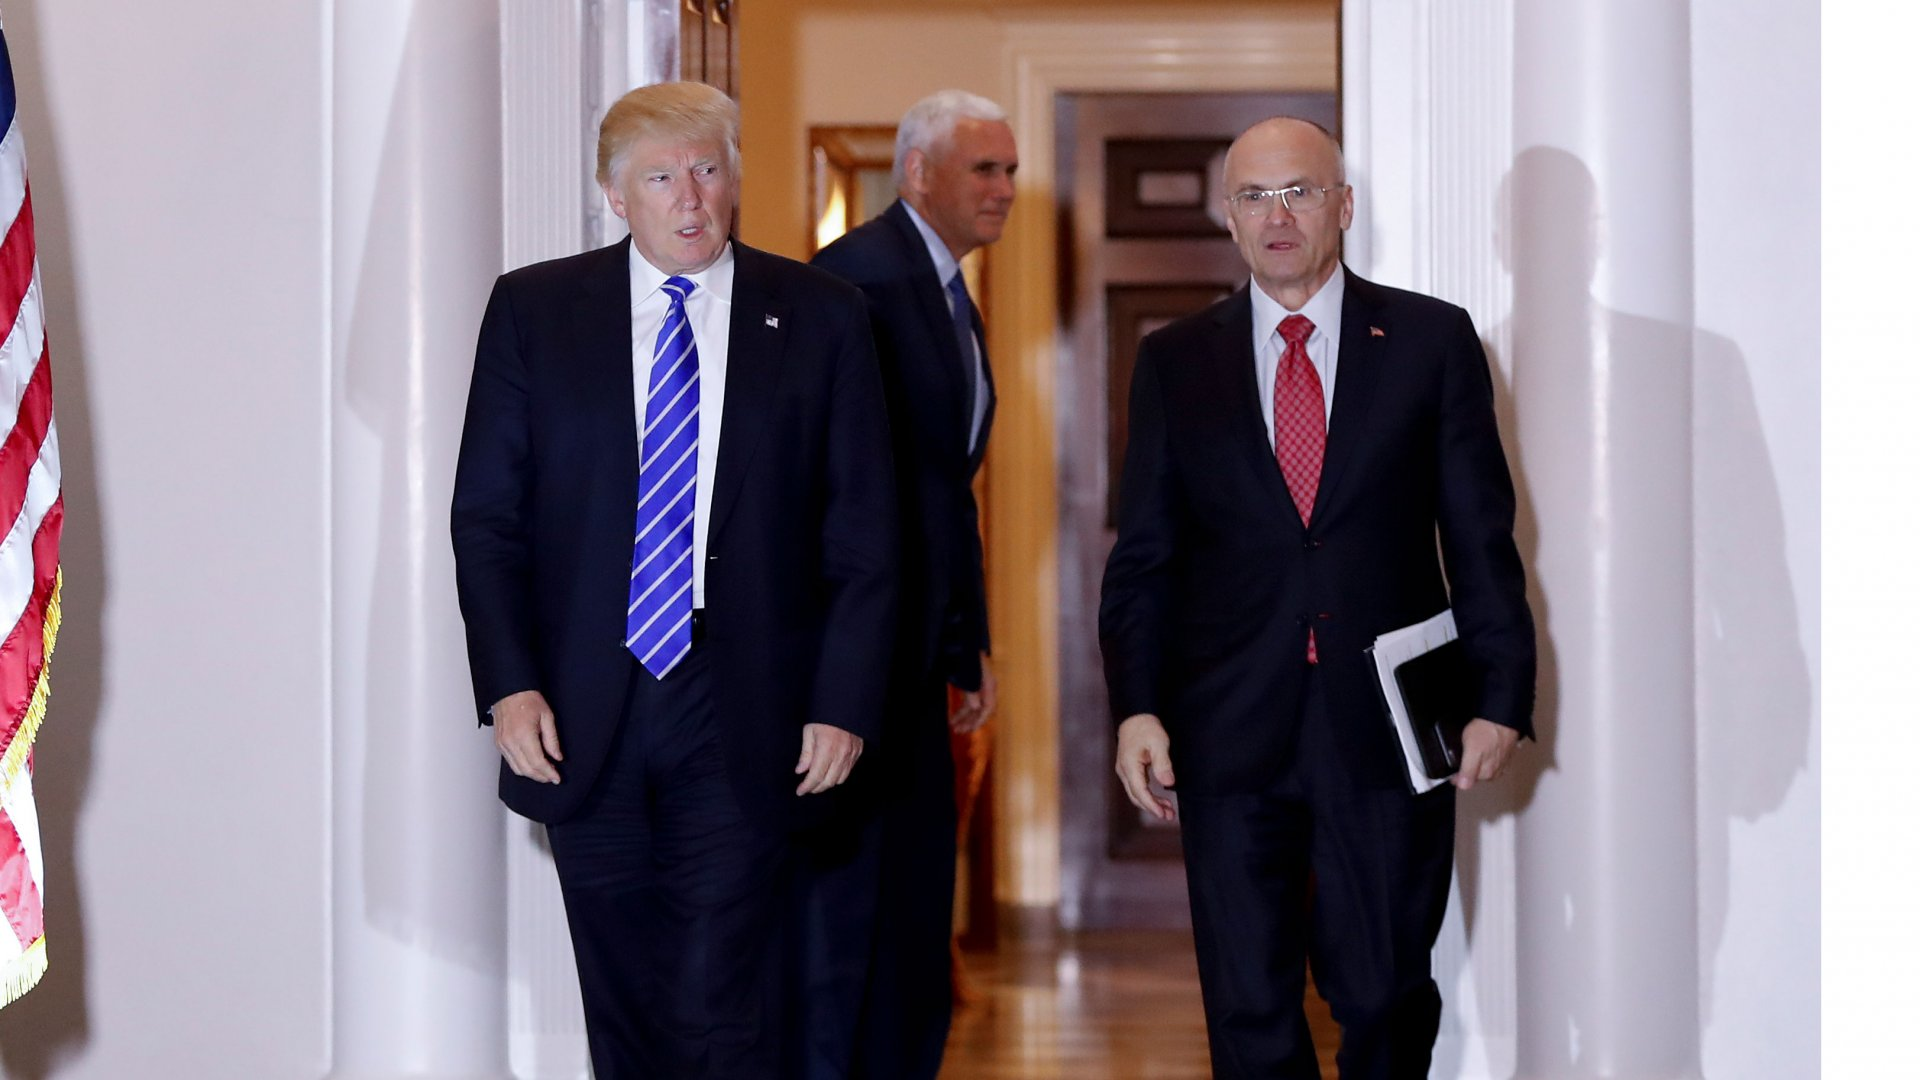 President-elect Donald Trump walks with CKE Restaurants CEO Andy Puzder from Trump National Golf Club Bedminster clubhouse in Bedminster, N.J. Trump is expected to add another wealthy business person and elite donor to his Cabinet, with fast food executive Andrew Puzder as Labor secretary.